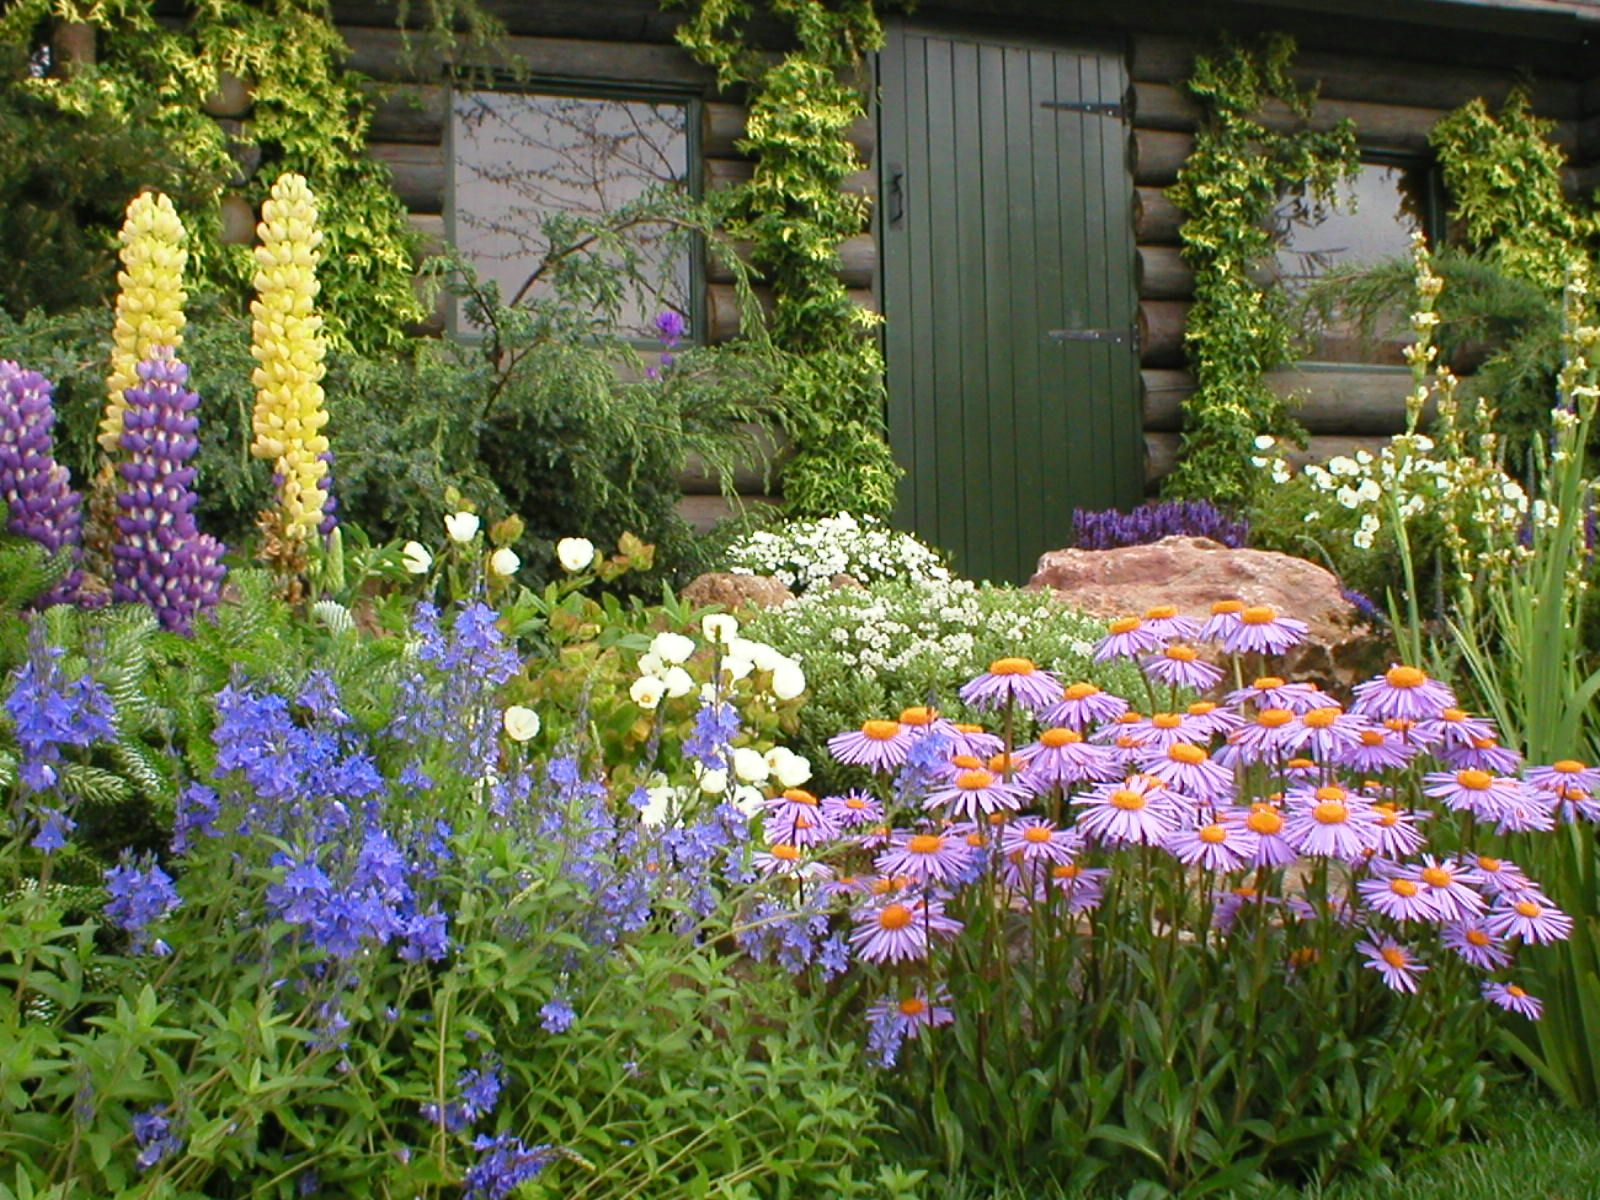 Cottage garden design garden designer stratford upon avon for Cottage garden plans designs